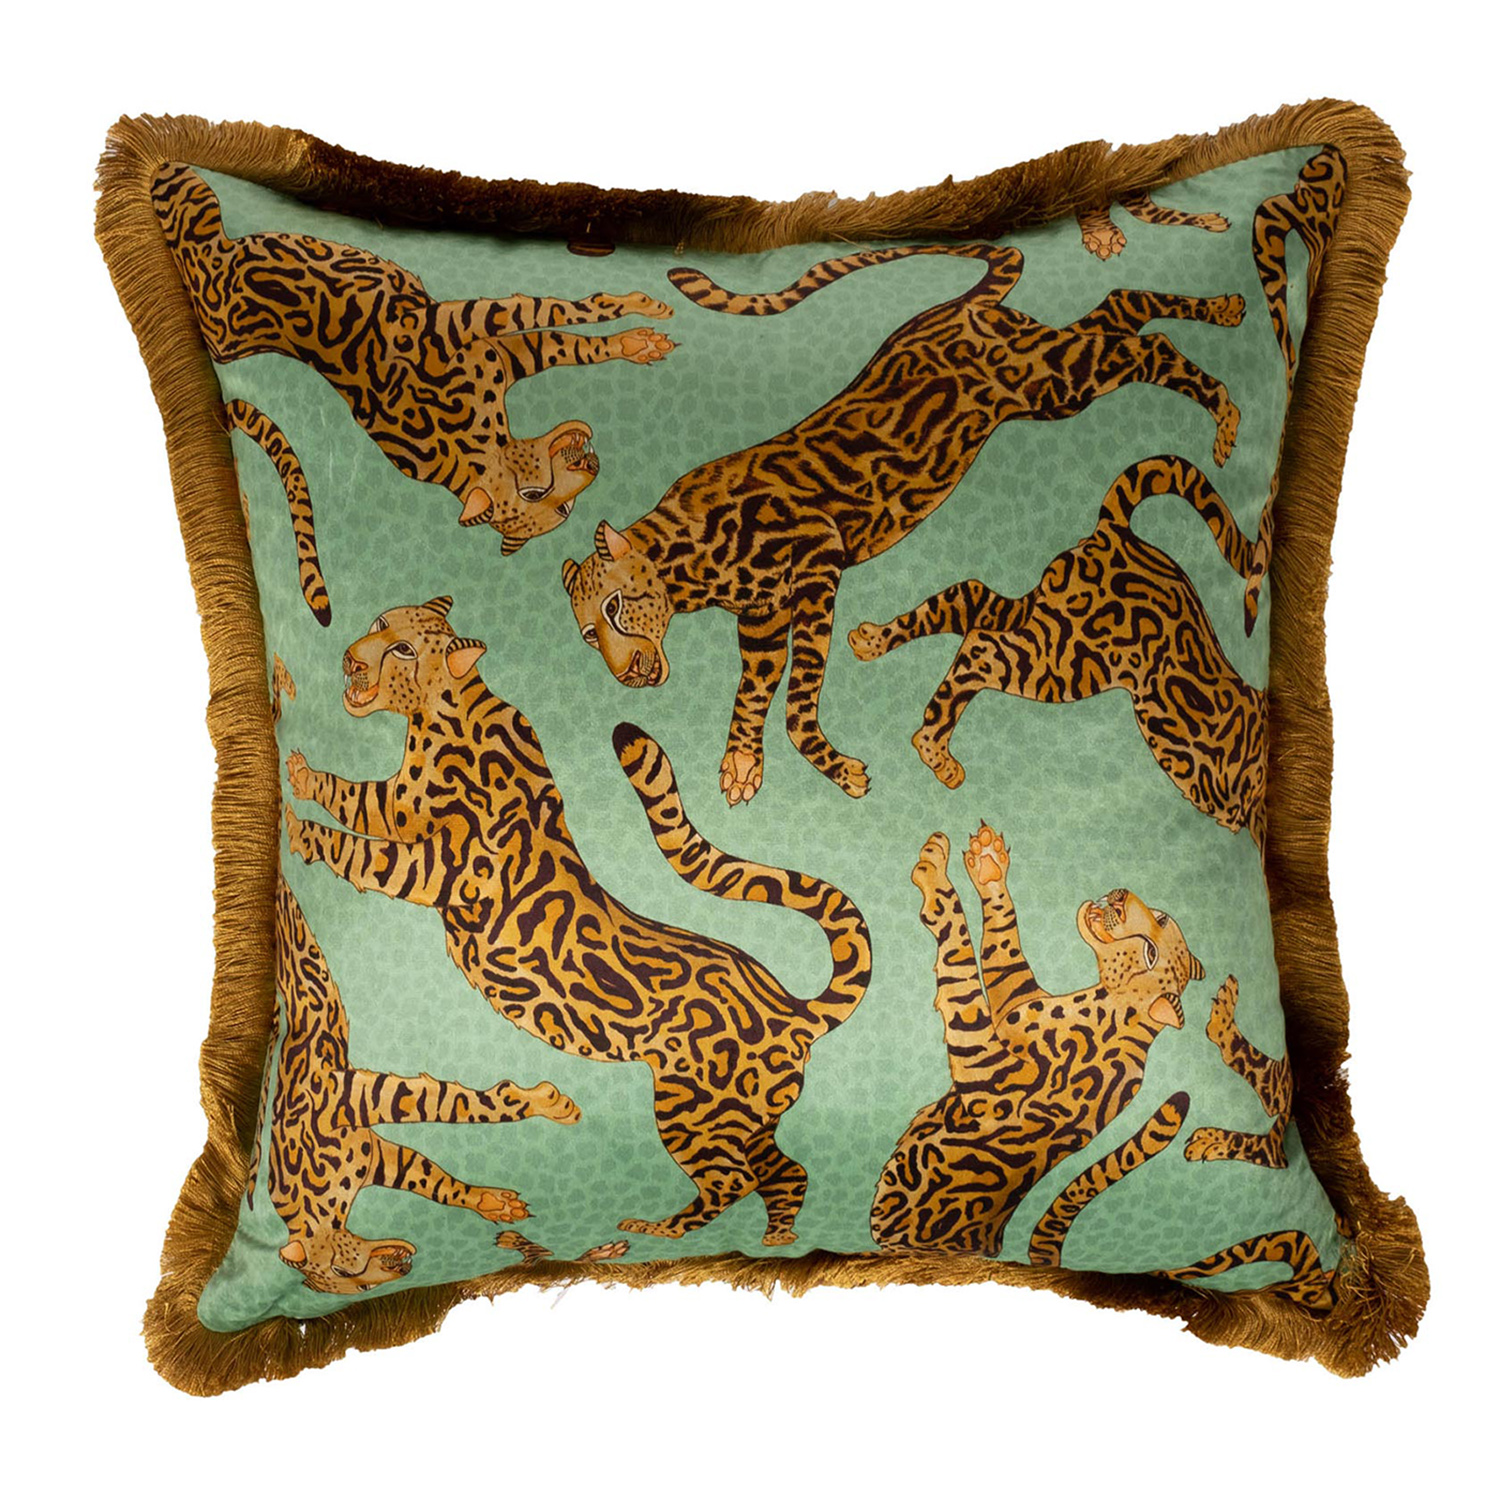 Cheetah Kings Pillow - Velvet w/ Fringe - Jade